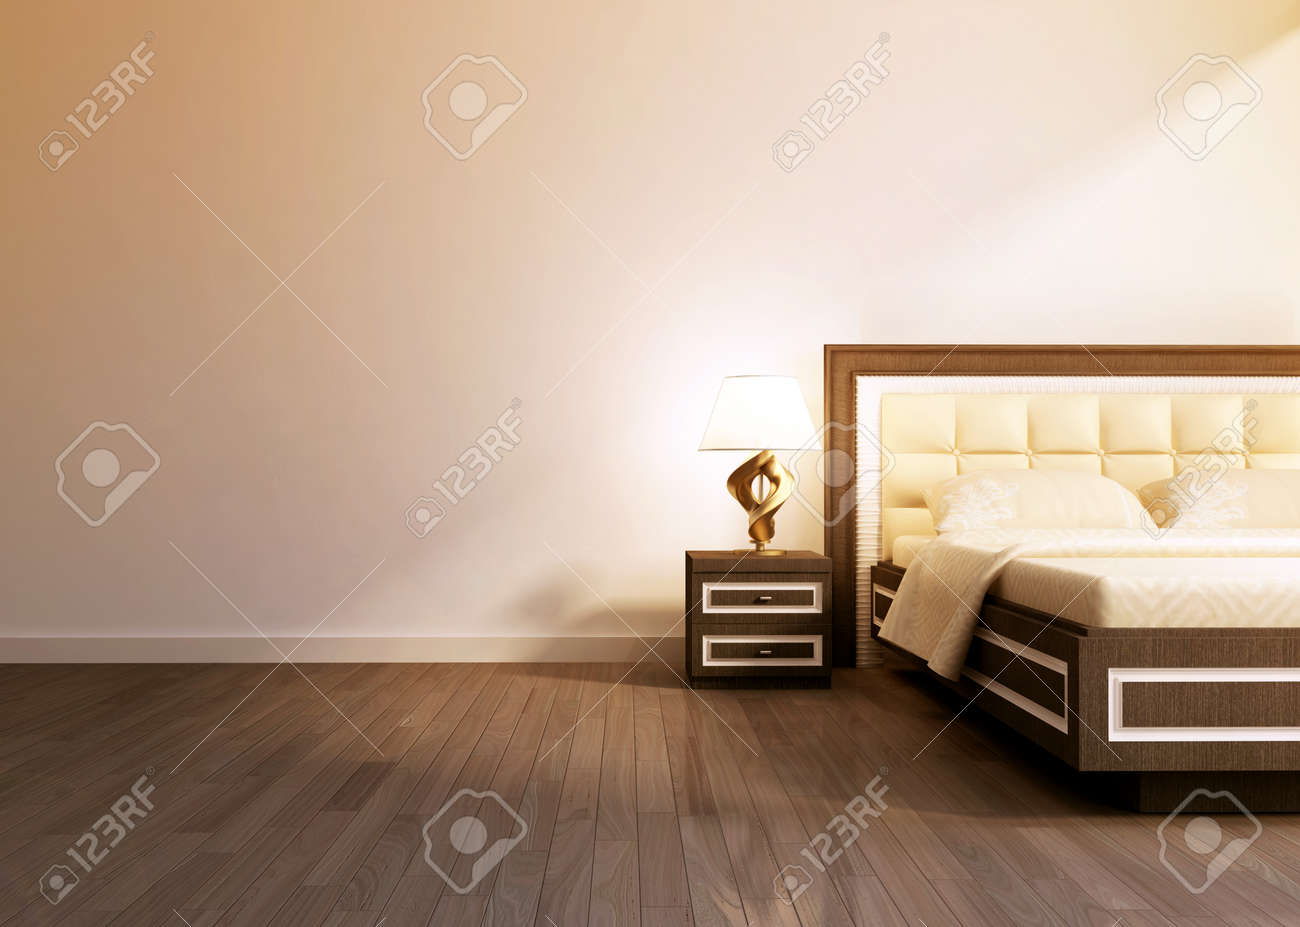 Modern Interior Room With King Size Bad. 3d Rendering Stock Photo ... Bad Design Beige